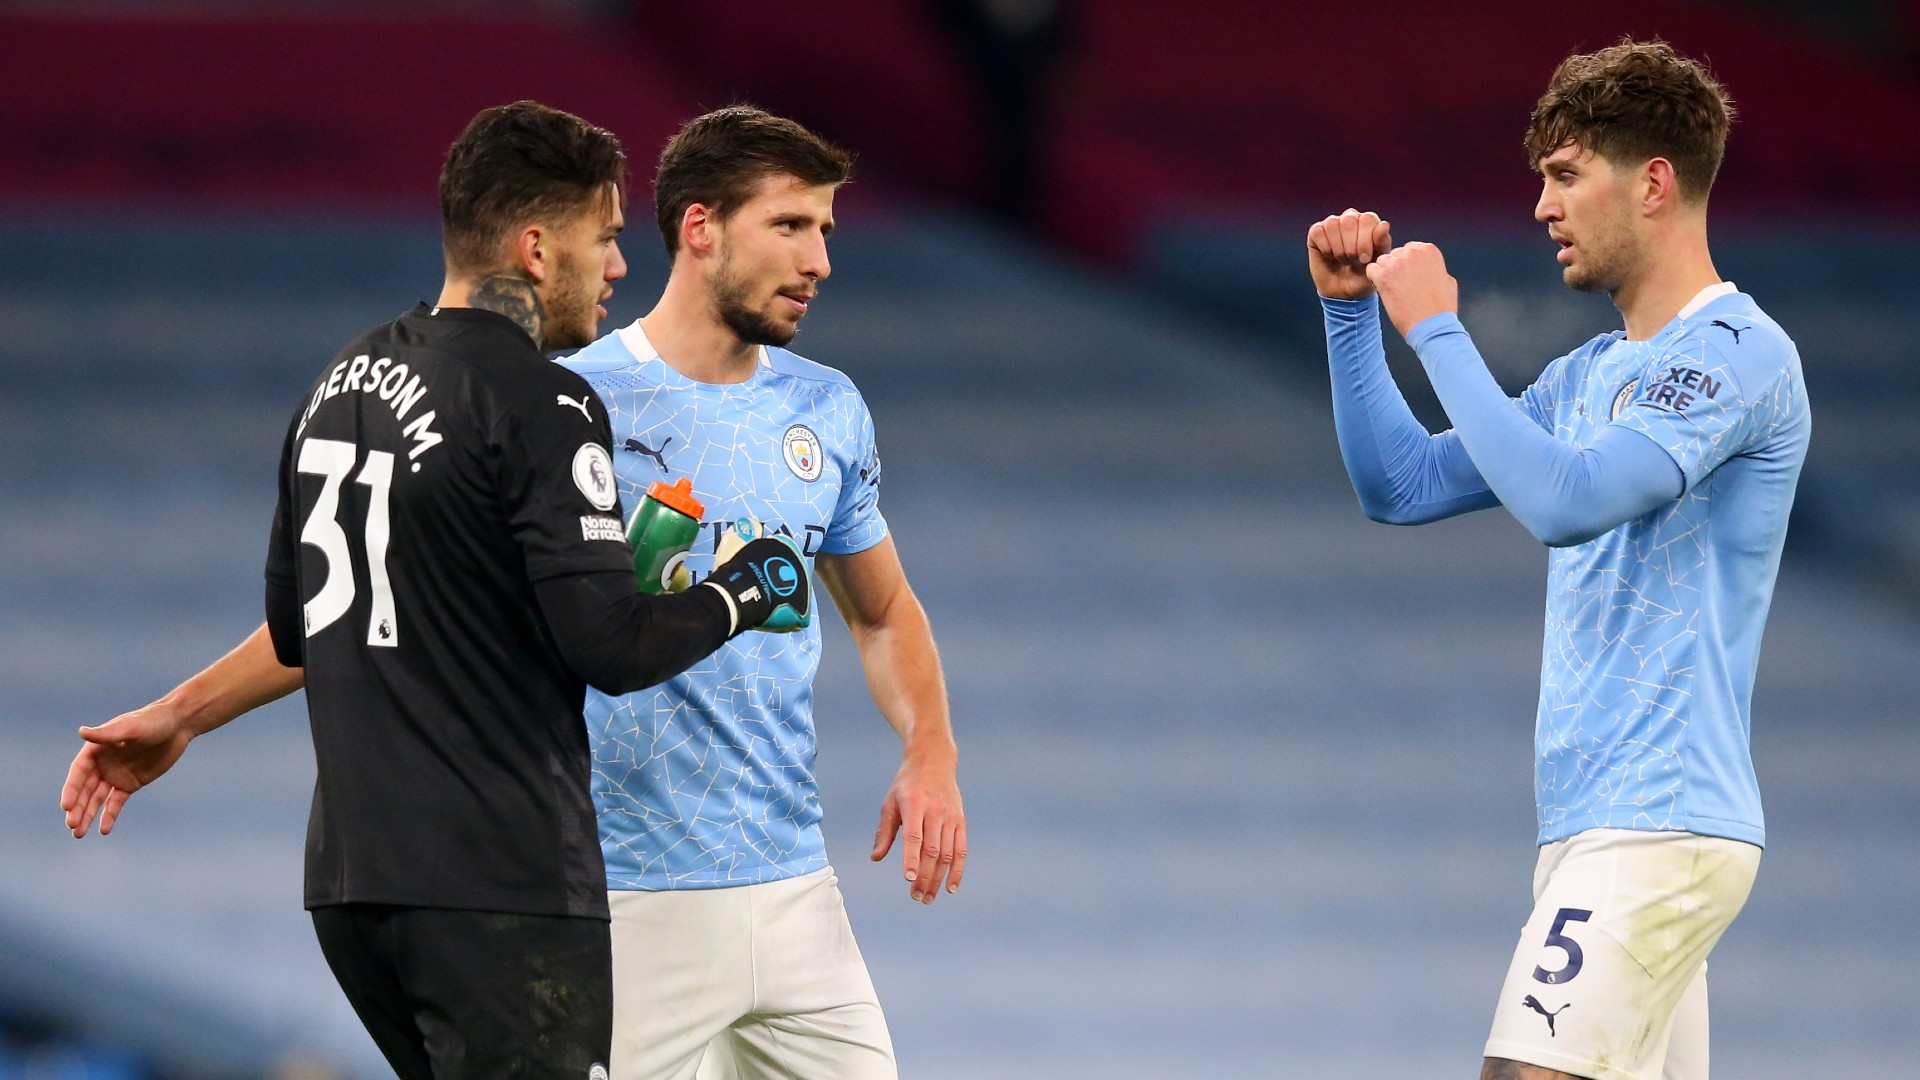 'I absolutely love playing with Dias' - Stones hails Manchester City team-mate following return to form